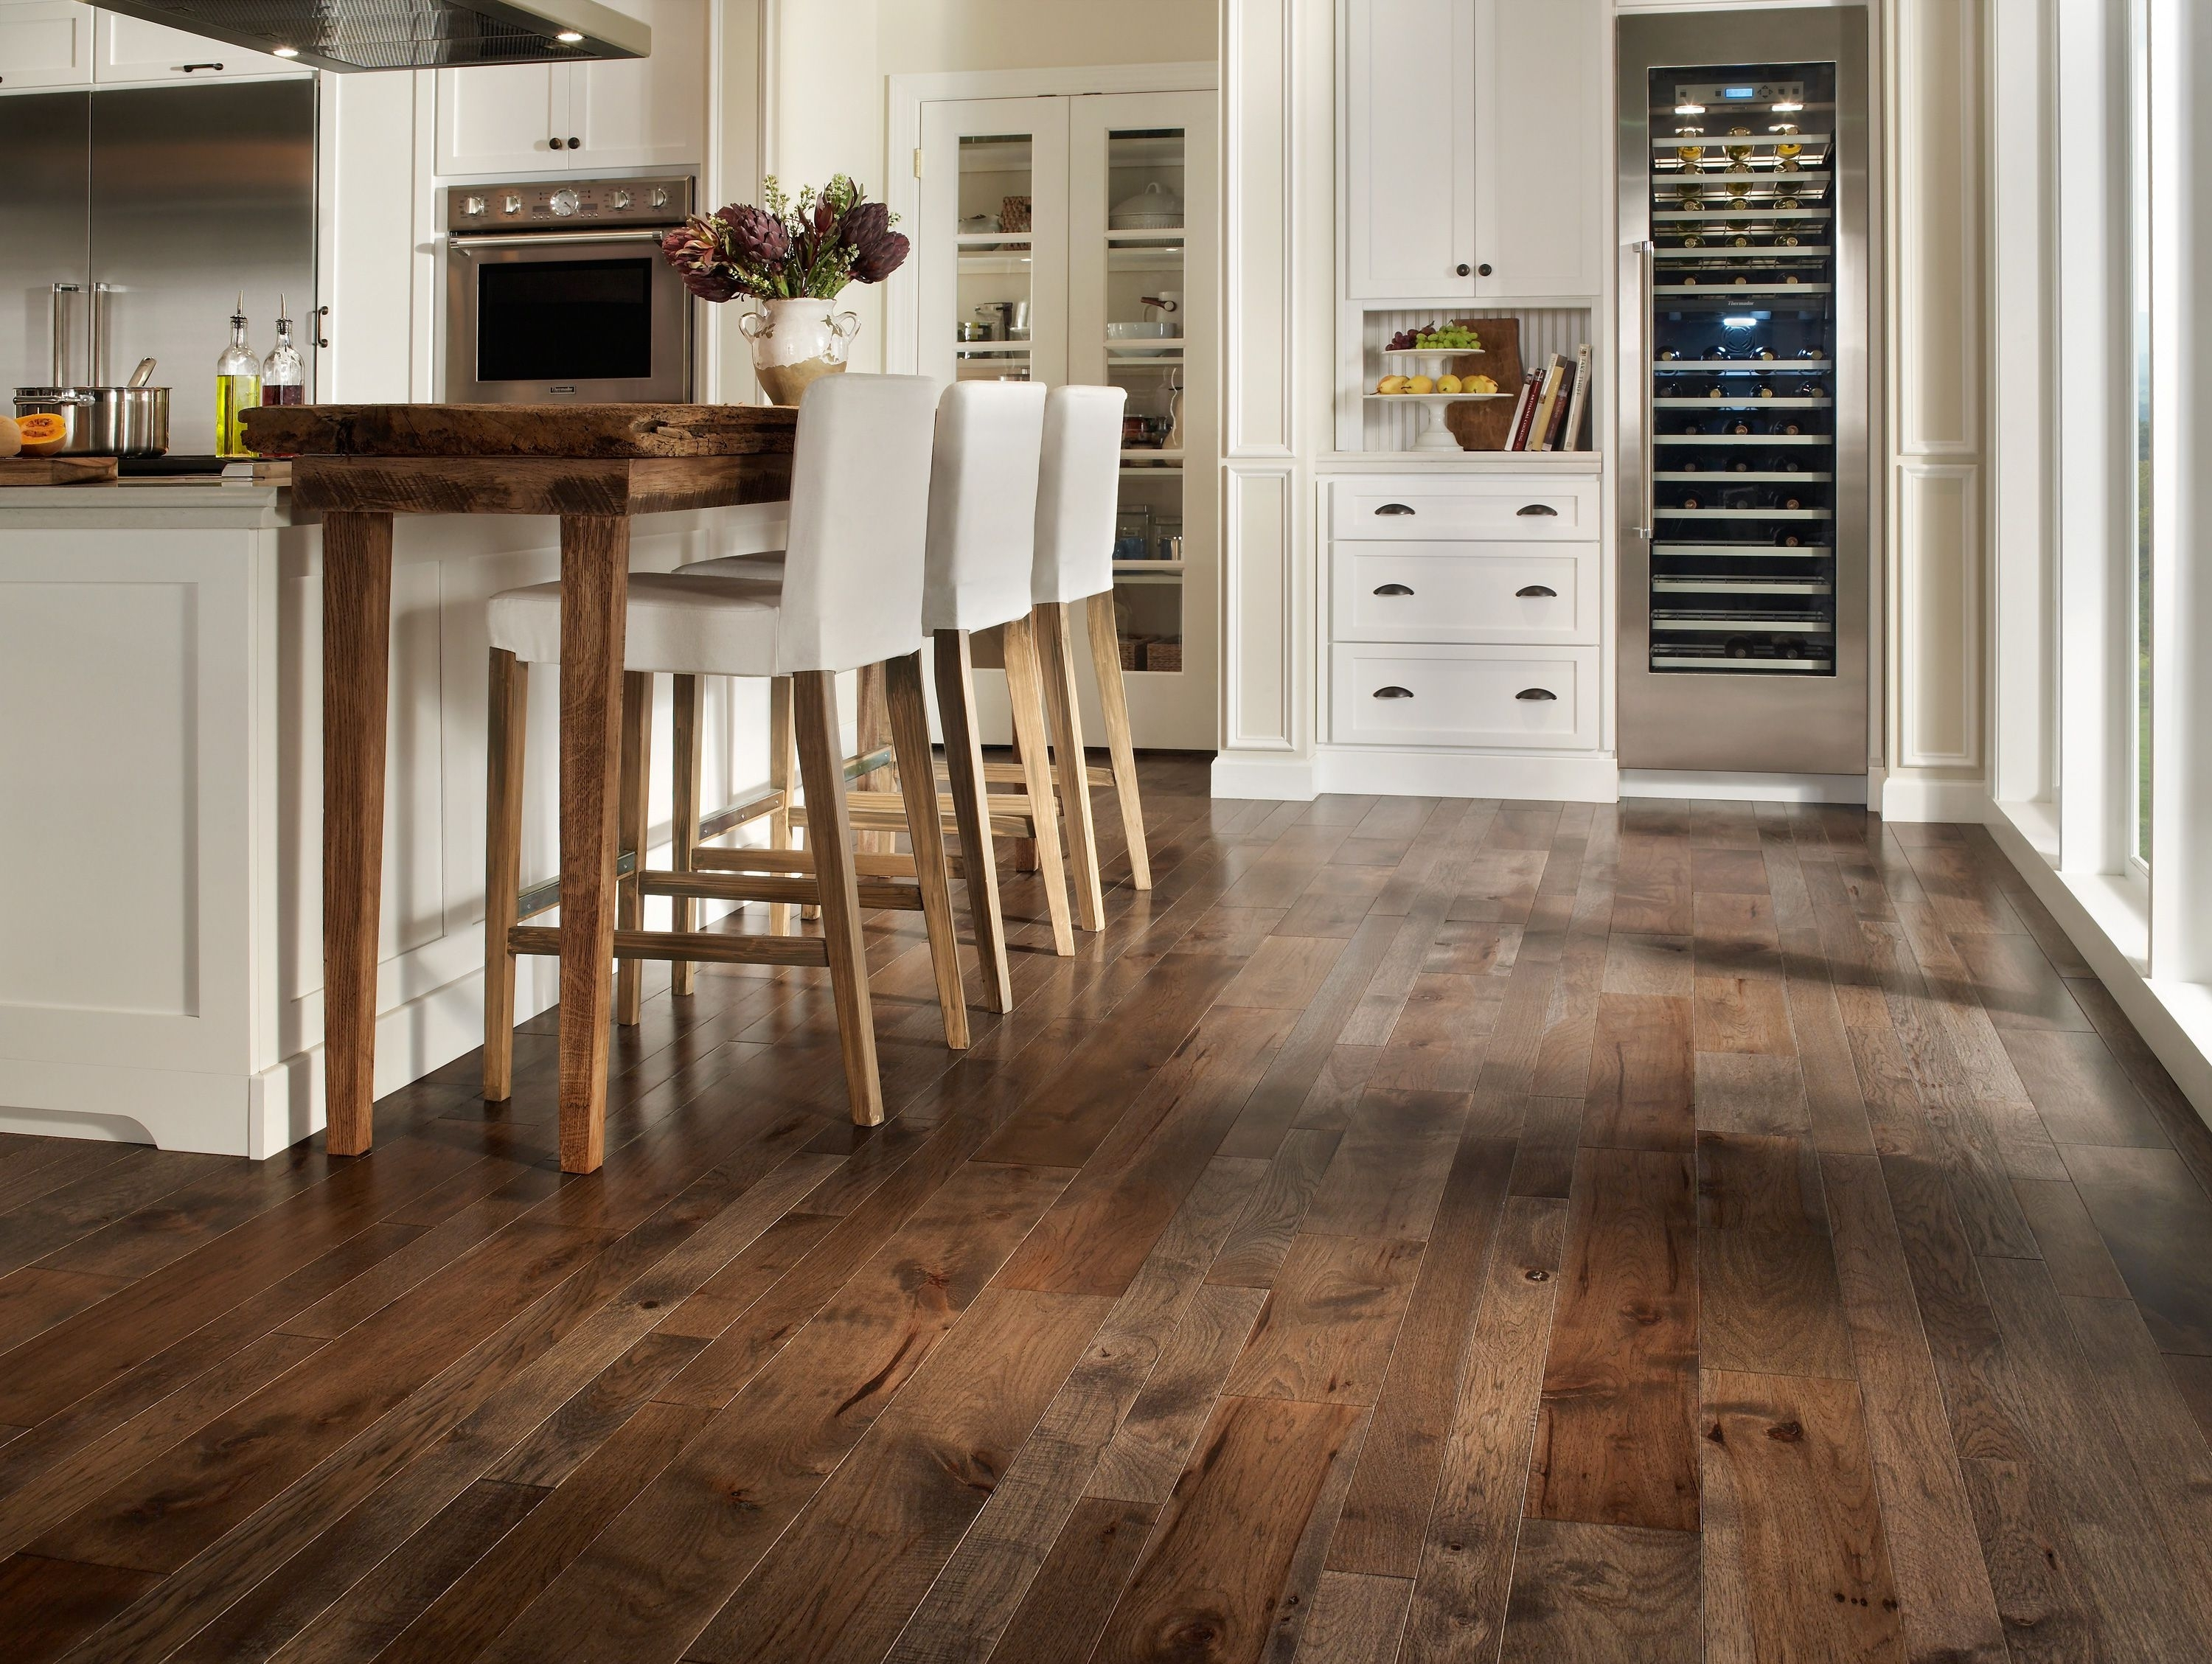 Choose Laminate Wood Floor Color3000 X 2257